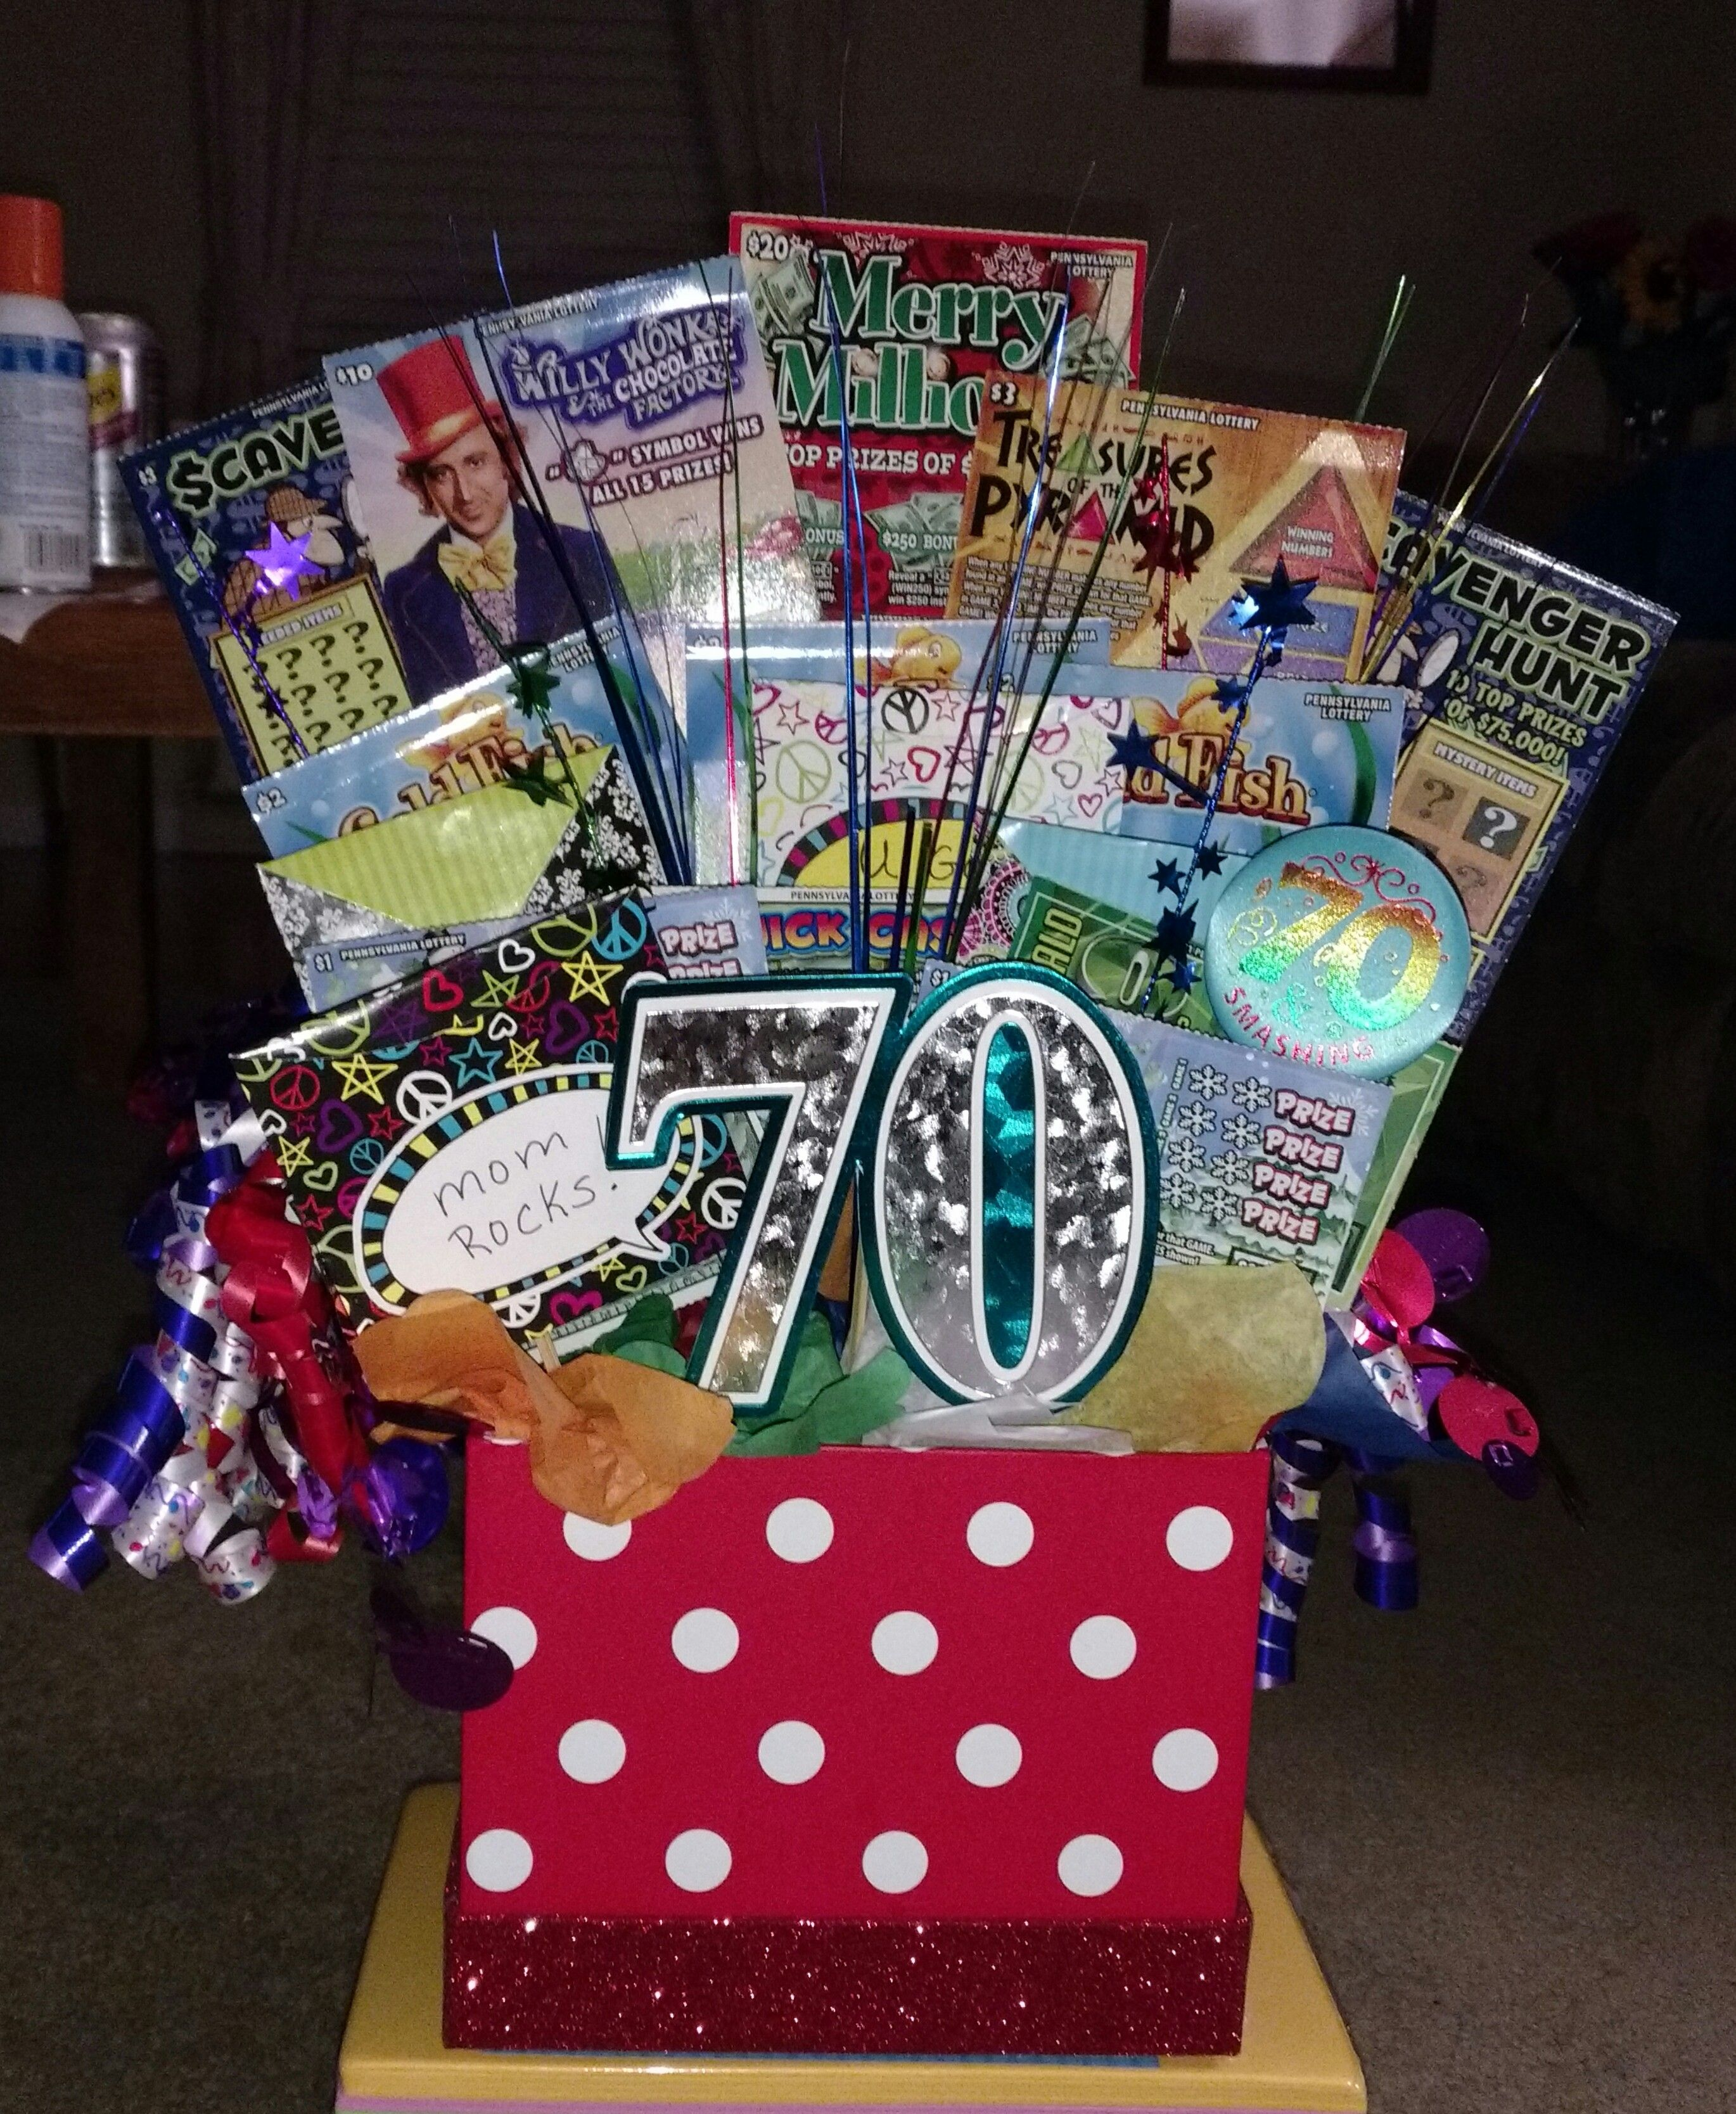 70th birthday gift idea made with scratchy tickets and